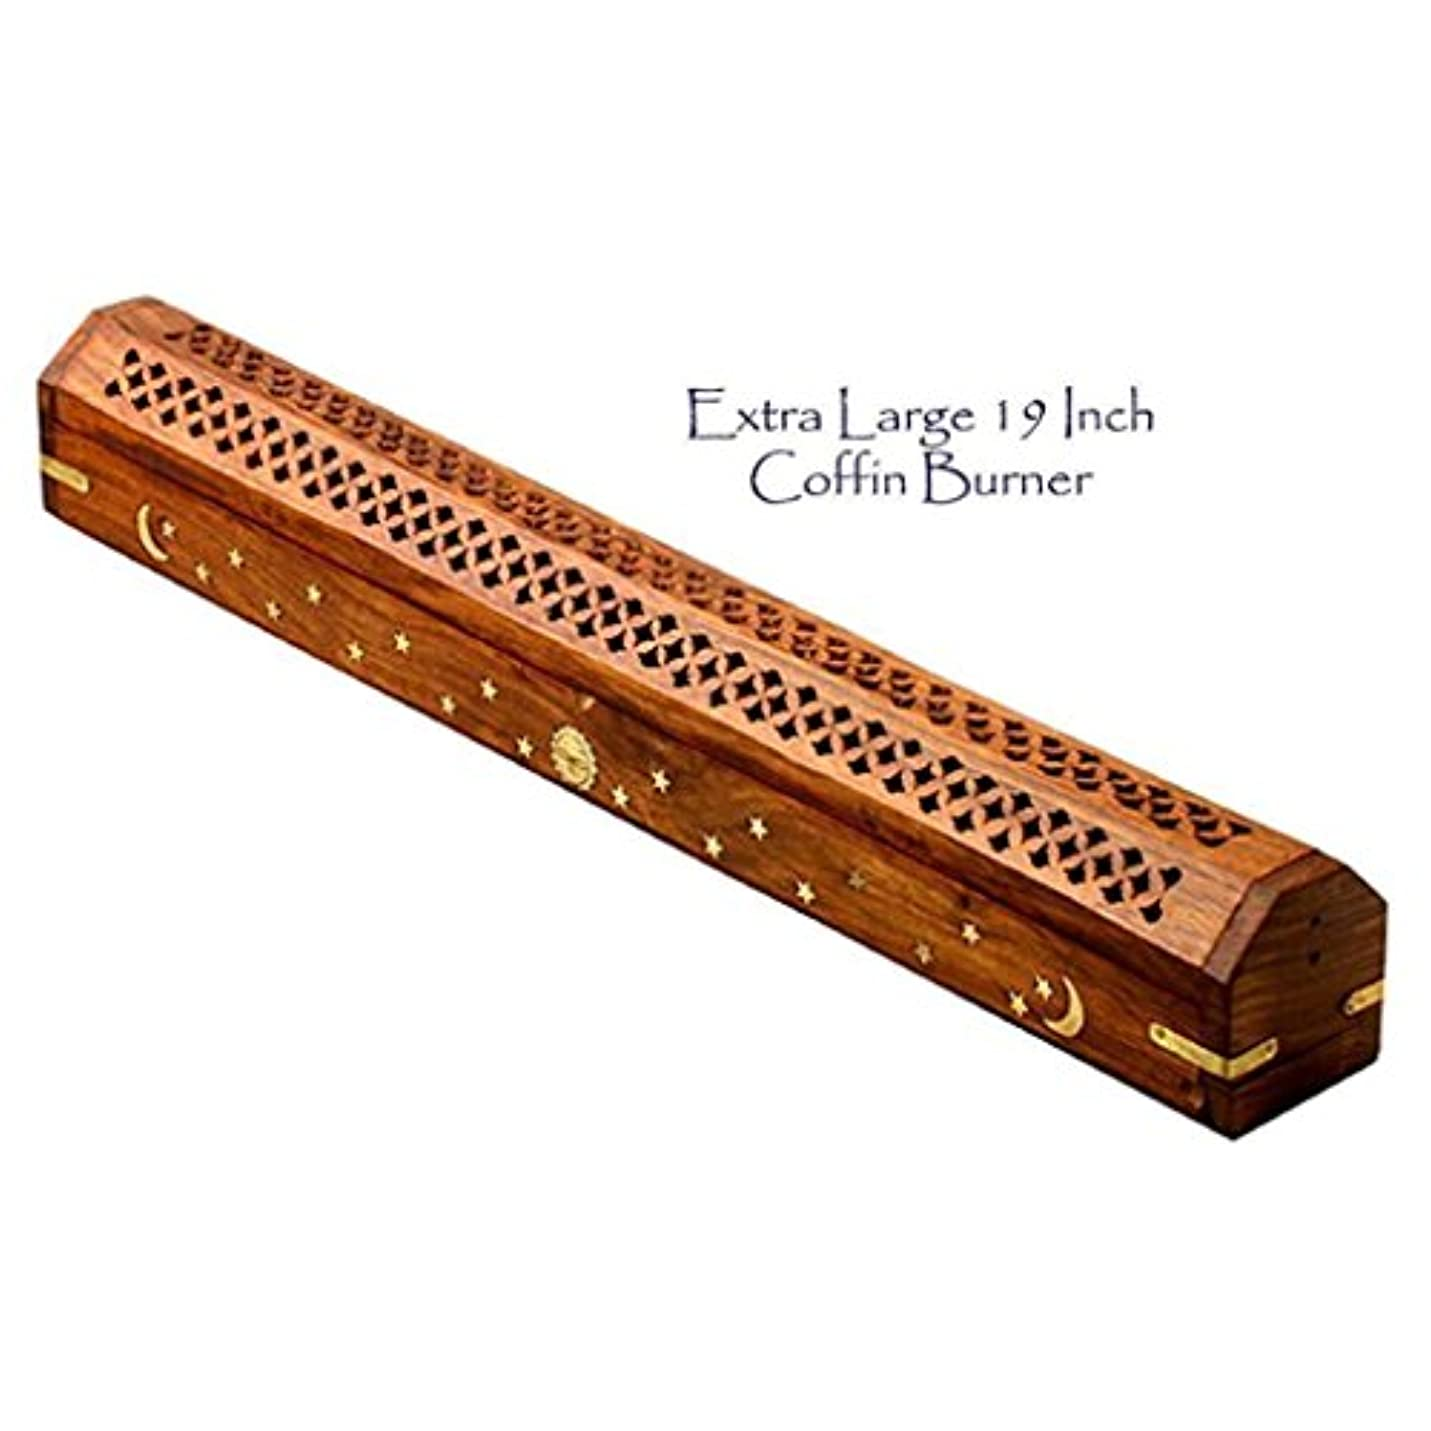 クリップ蝶勇気積極的にThe Parfumerie Incense CoFfIn / Burner Extra Large for 19 in。Incense Sticks – 真鍮月&星